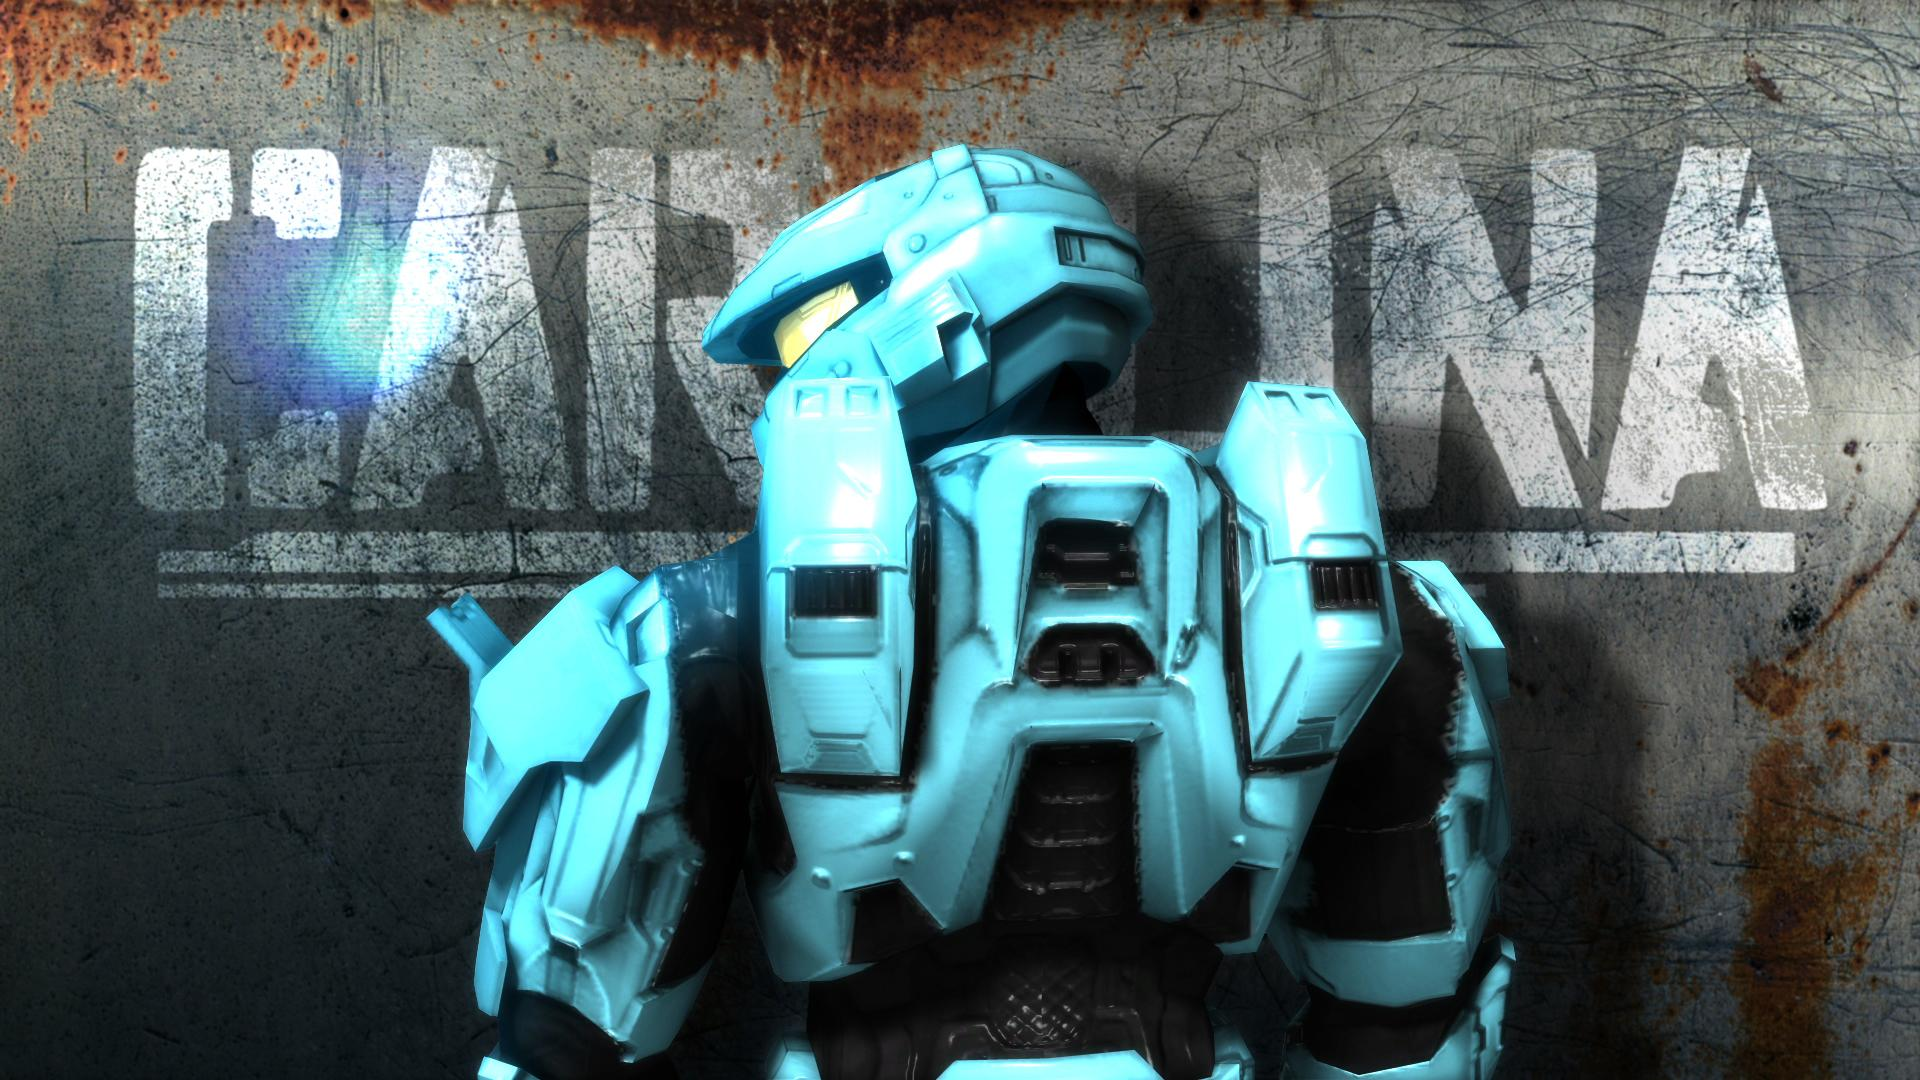 Cool Wallpapers For Pc 3d Free Red Vs Blue Hd Backgrounds Pixelstalk Net